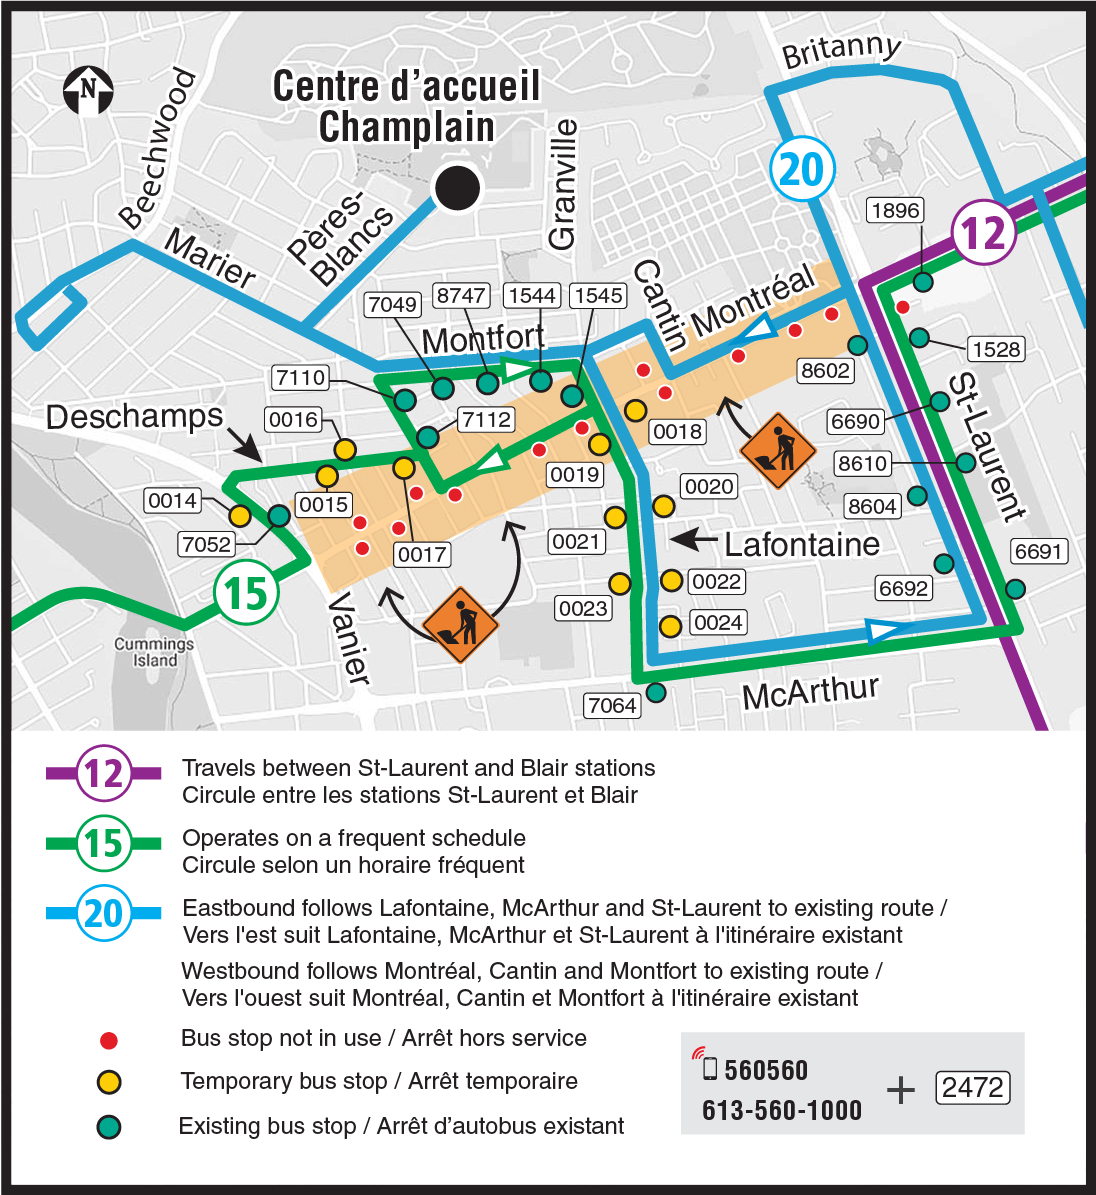 Zoomed in view of the western half of the Montréal Road eastbound closure, showing the partial detour routing and impacted bus stops for Routes 12, 15, and 20 between Beechwood and St-Laurent.